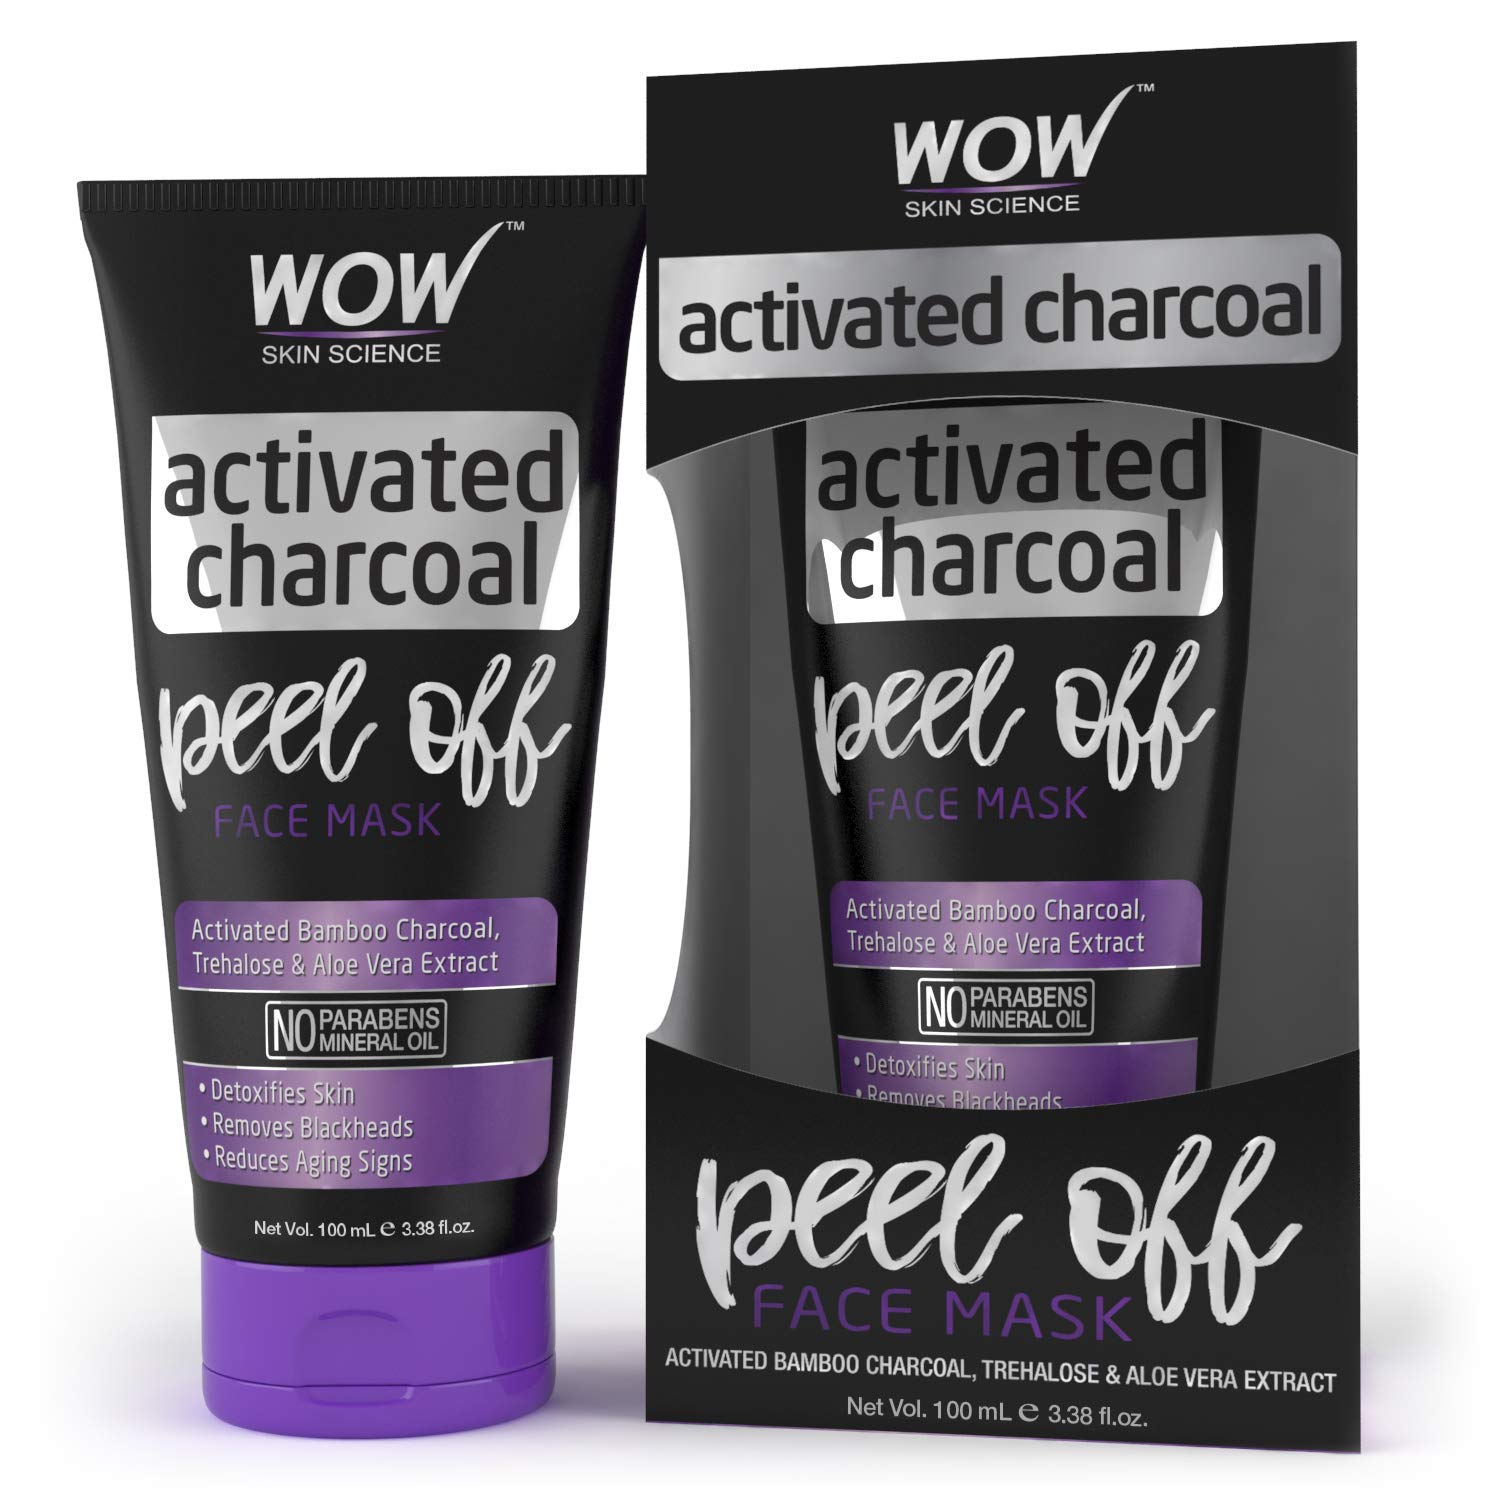 07e48b3ff5ef WOW Activated Charcoal Face Mask - Peel Off - No Parabens & Mineral Oils  (100mL)